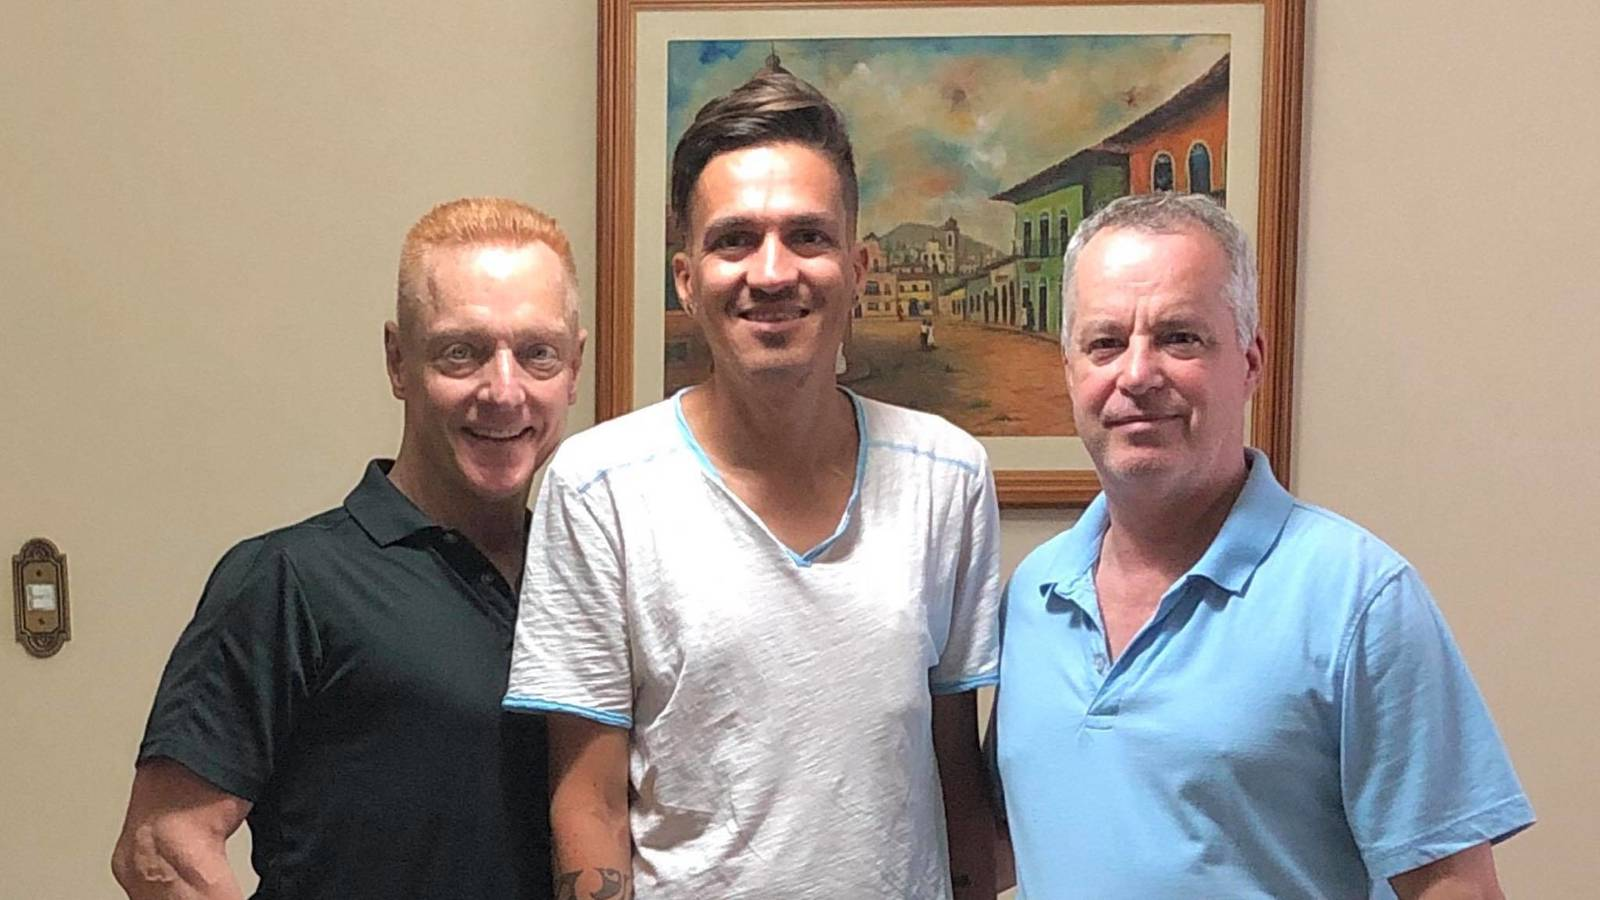 Lenny Courtemanche of HIV Advocates brings help to Brazil